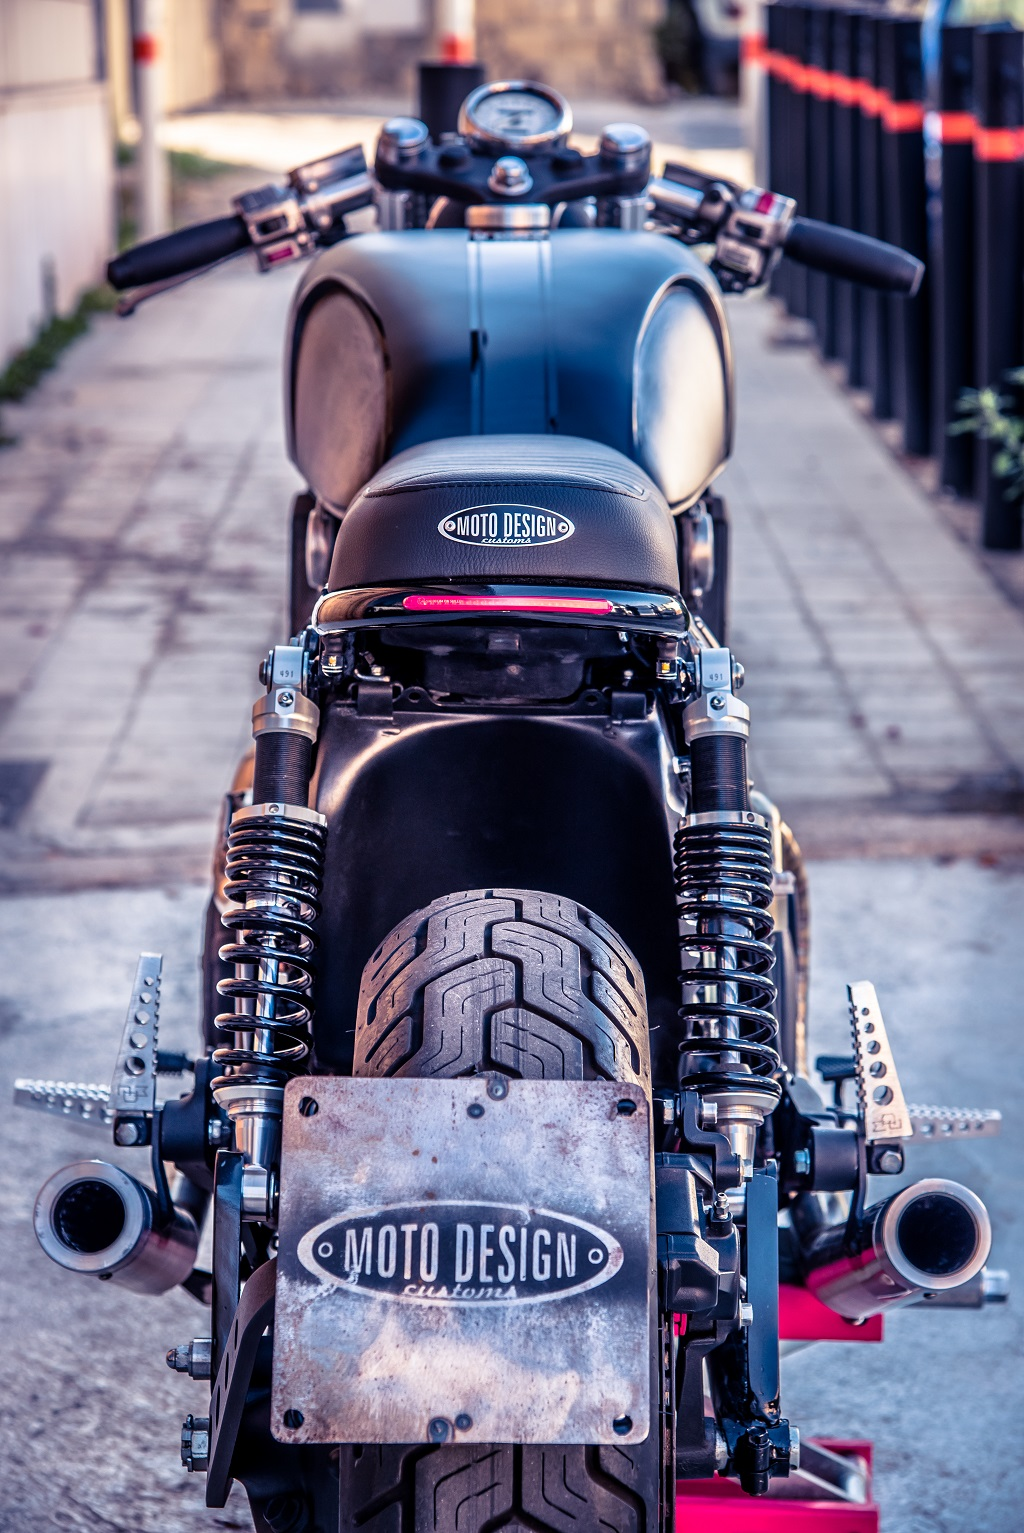 Yamaha VMax 1200 Street Racer by Moto Design Customs